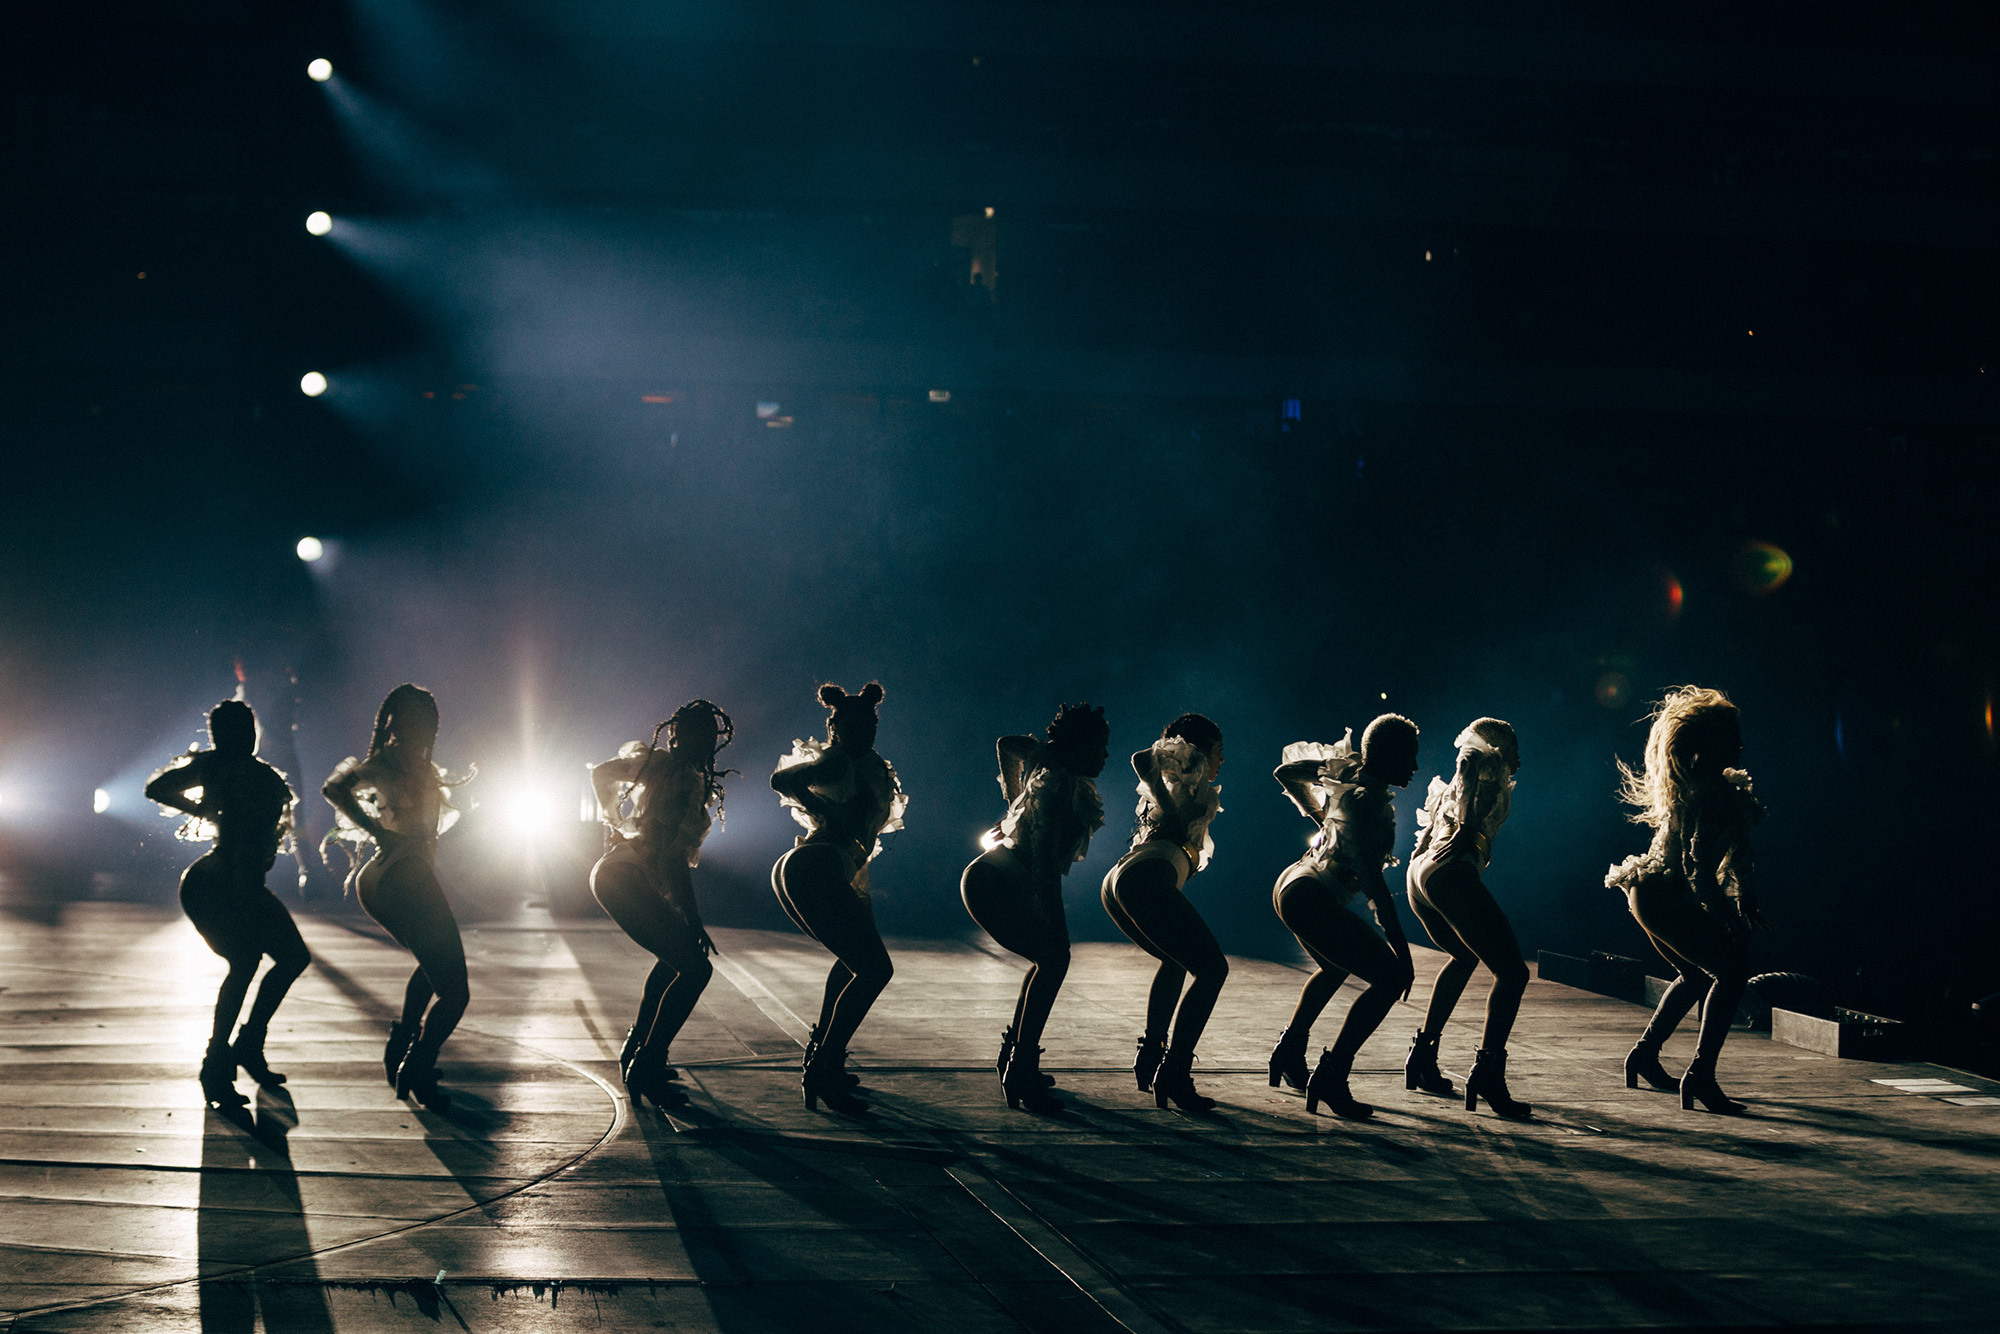 Dancers onstage at Beyoncé's Formation World Tour in Frankfurt, Germany, on July 30, 2016.